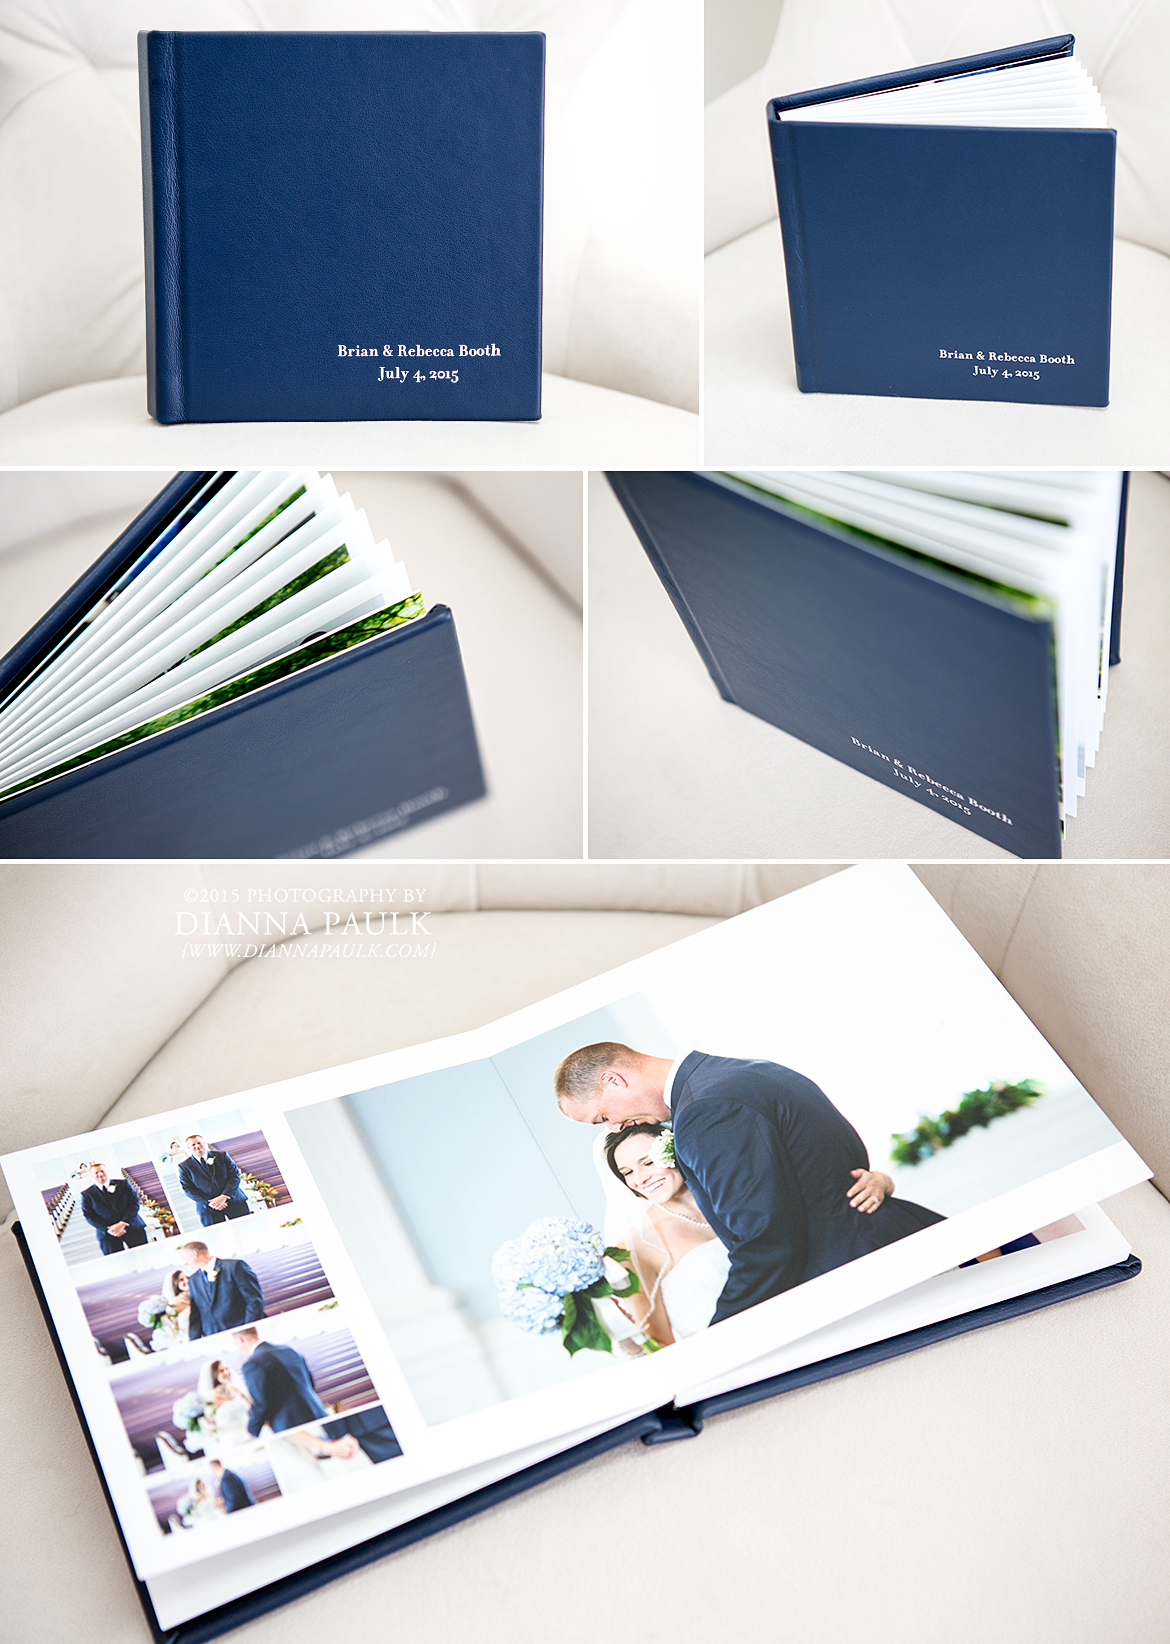 Basic Album; 8x8 20-page; Navy Blue Leather Cover; Silver Foil Stamping on Bottom Right